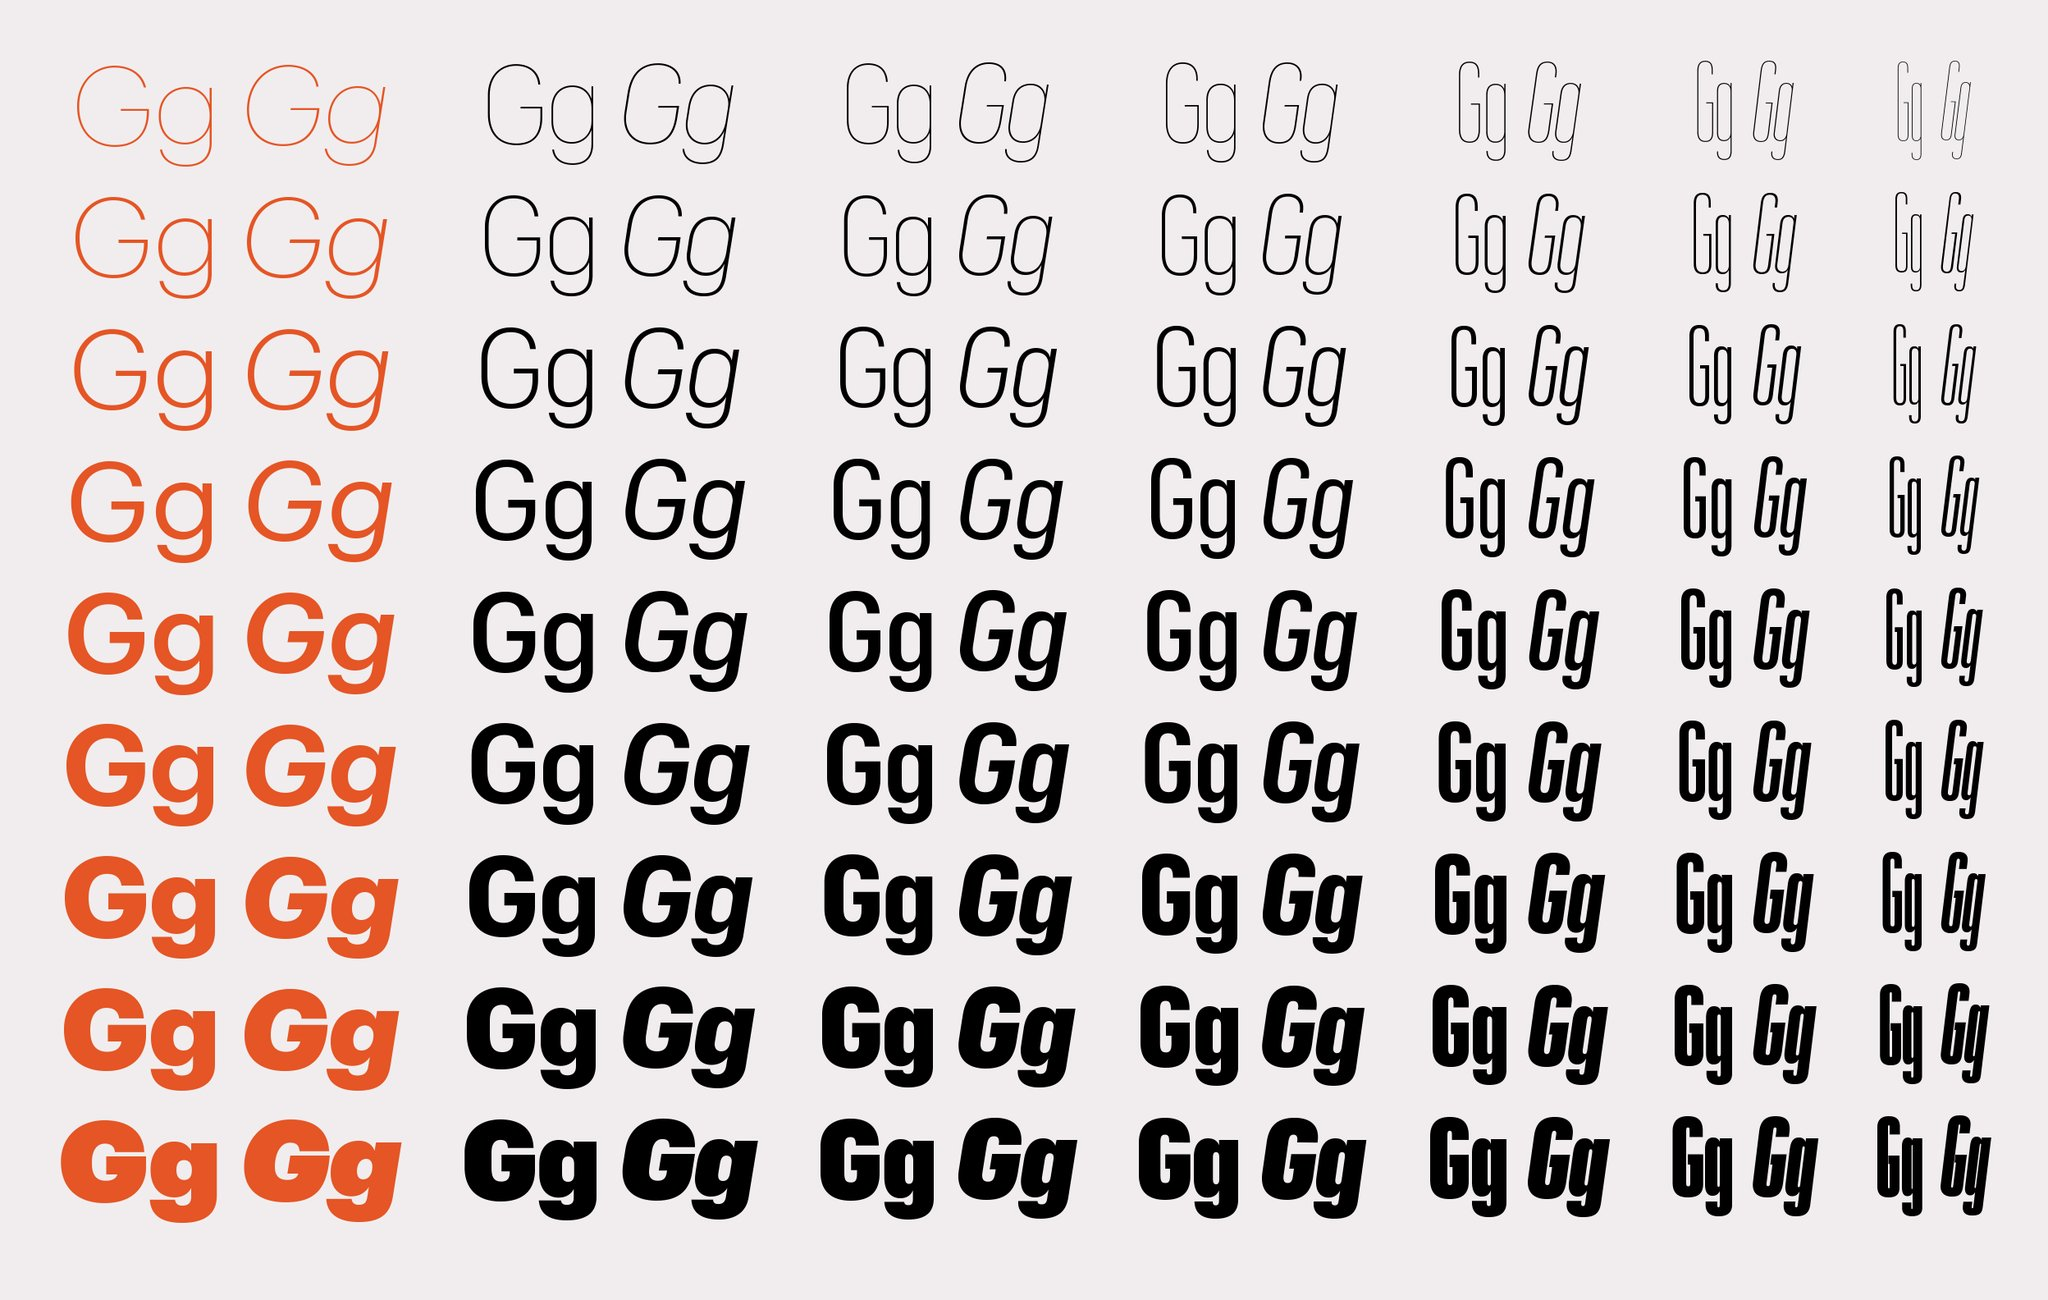 The original width of Graphik, released in 2009, is in red on the left.